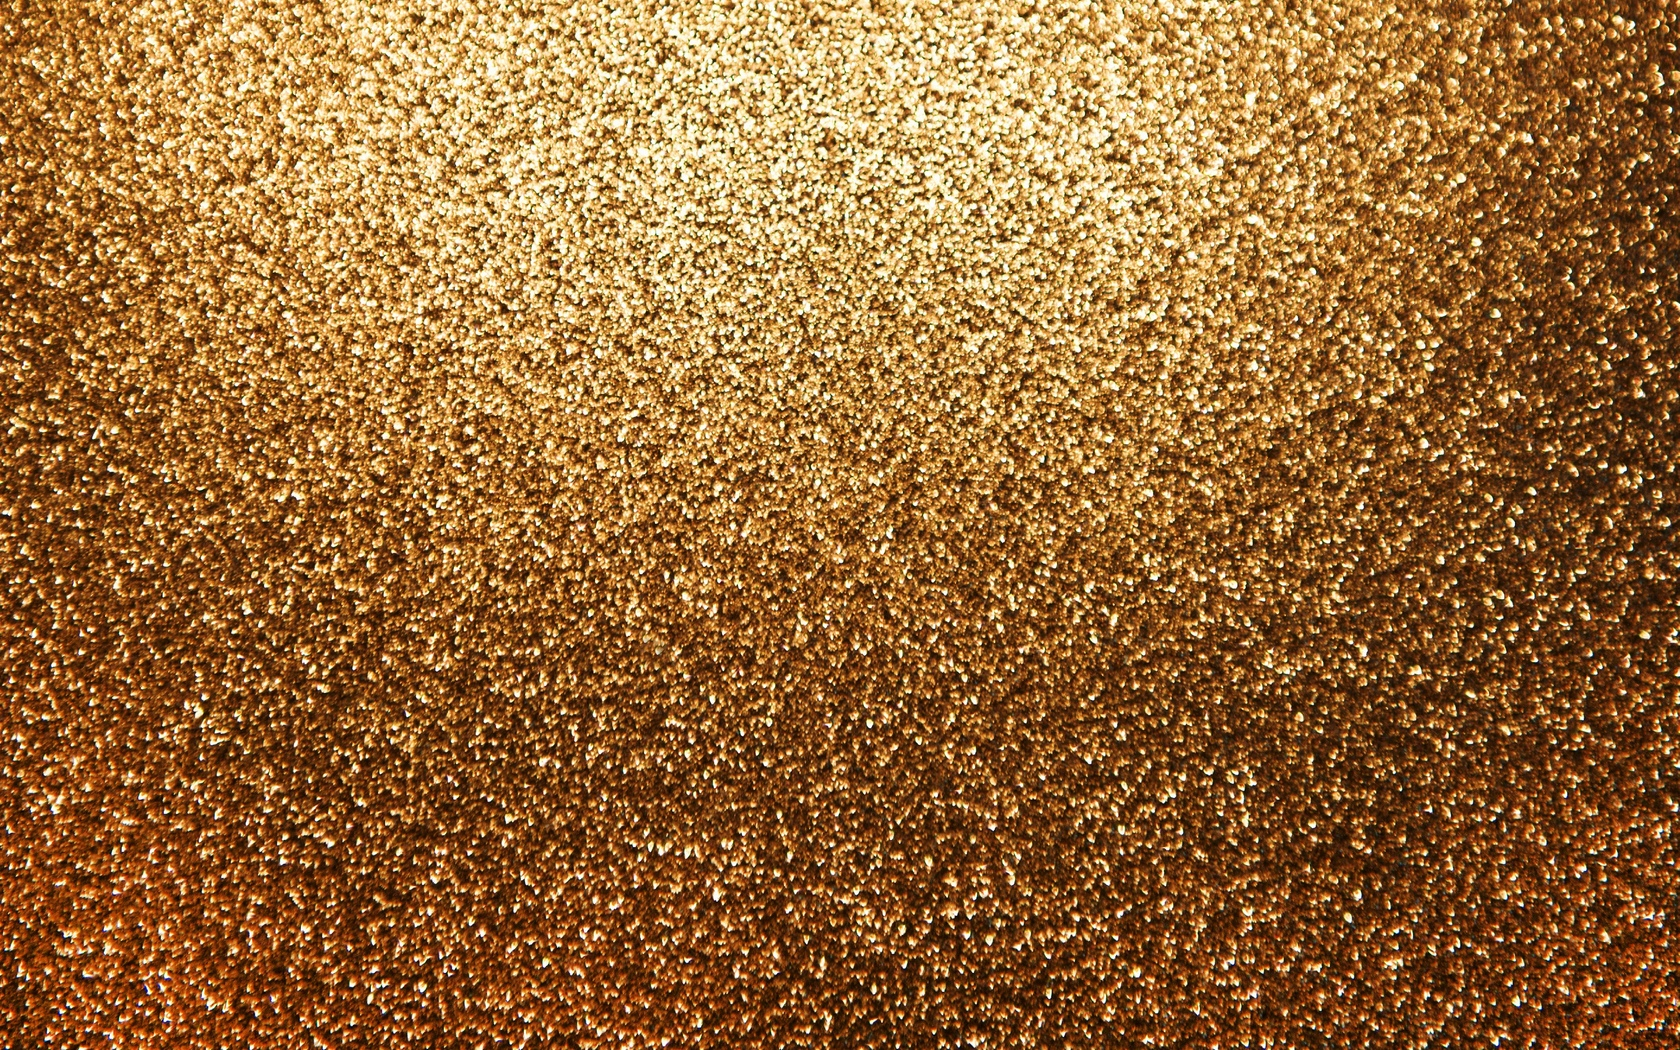 Gold Dust Wallpaper